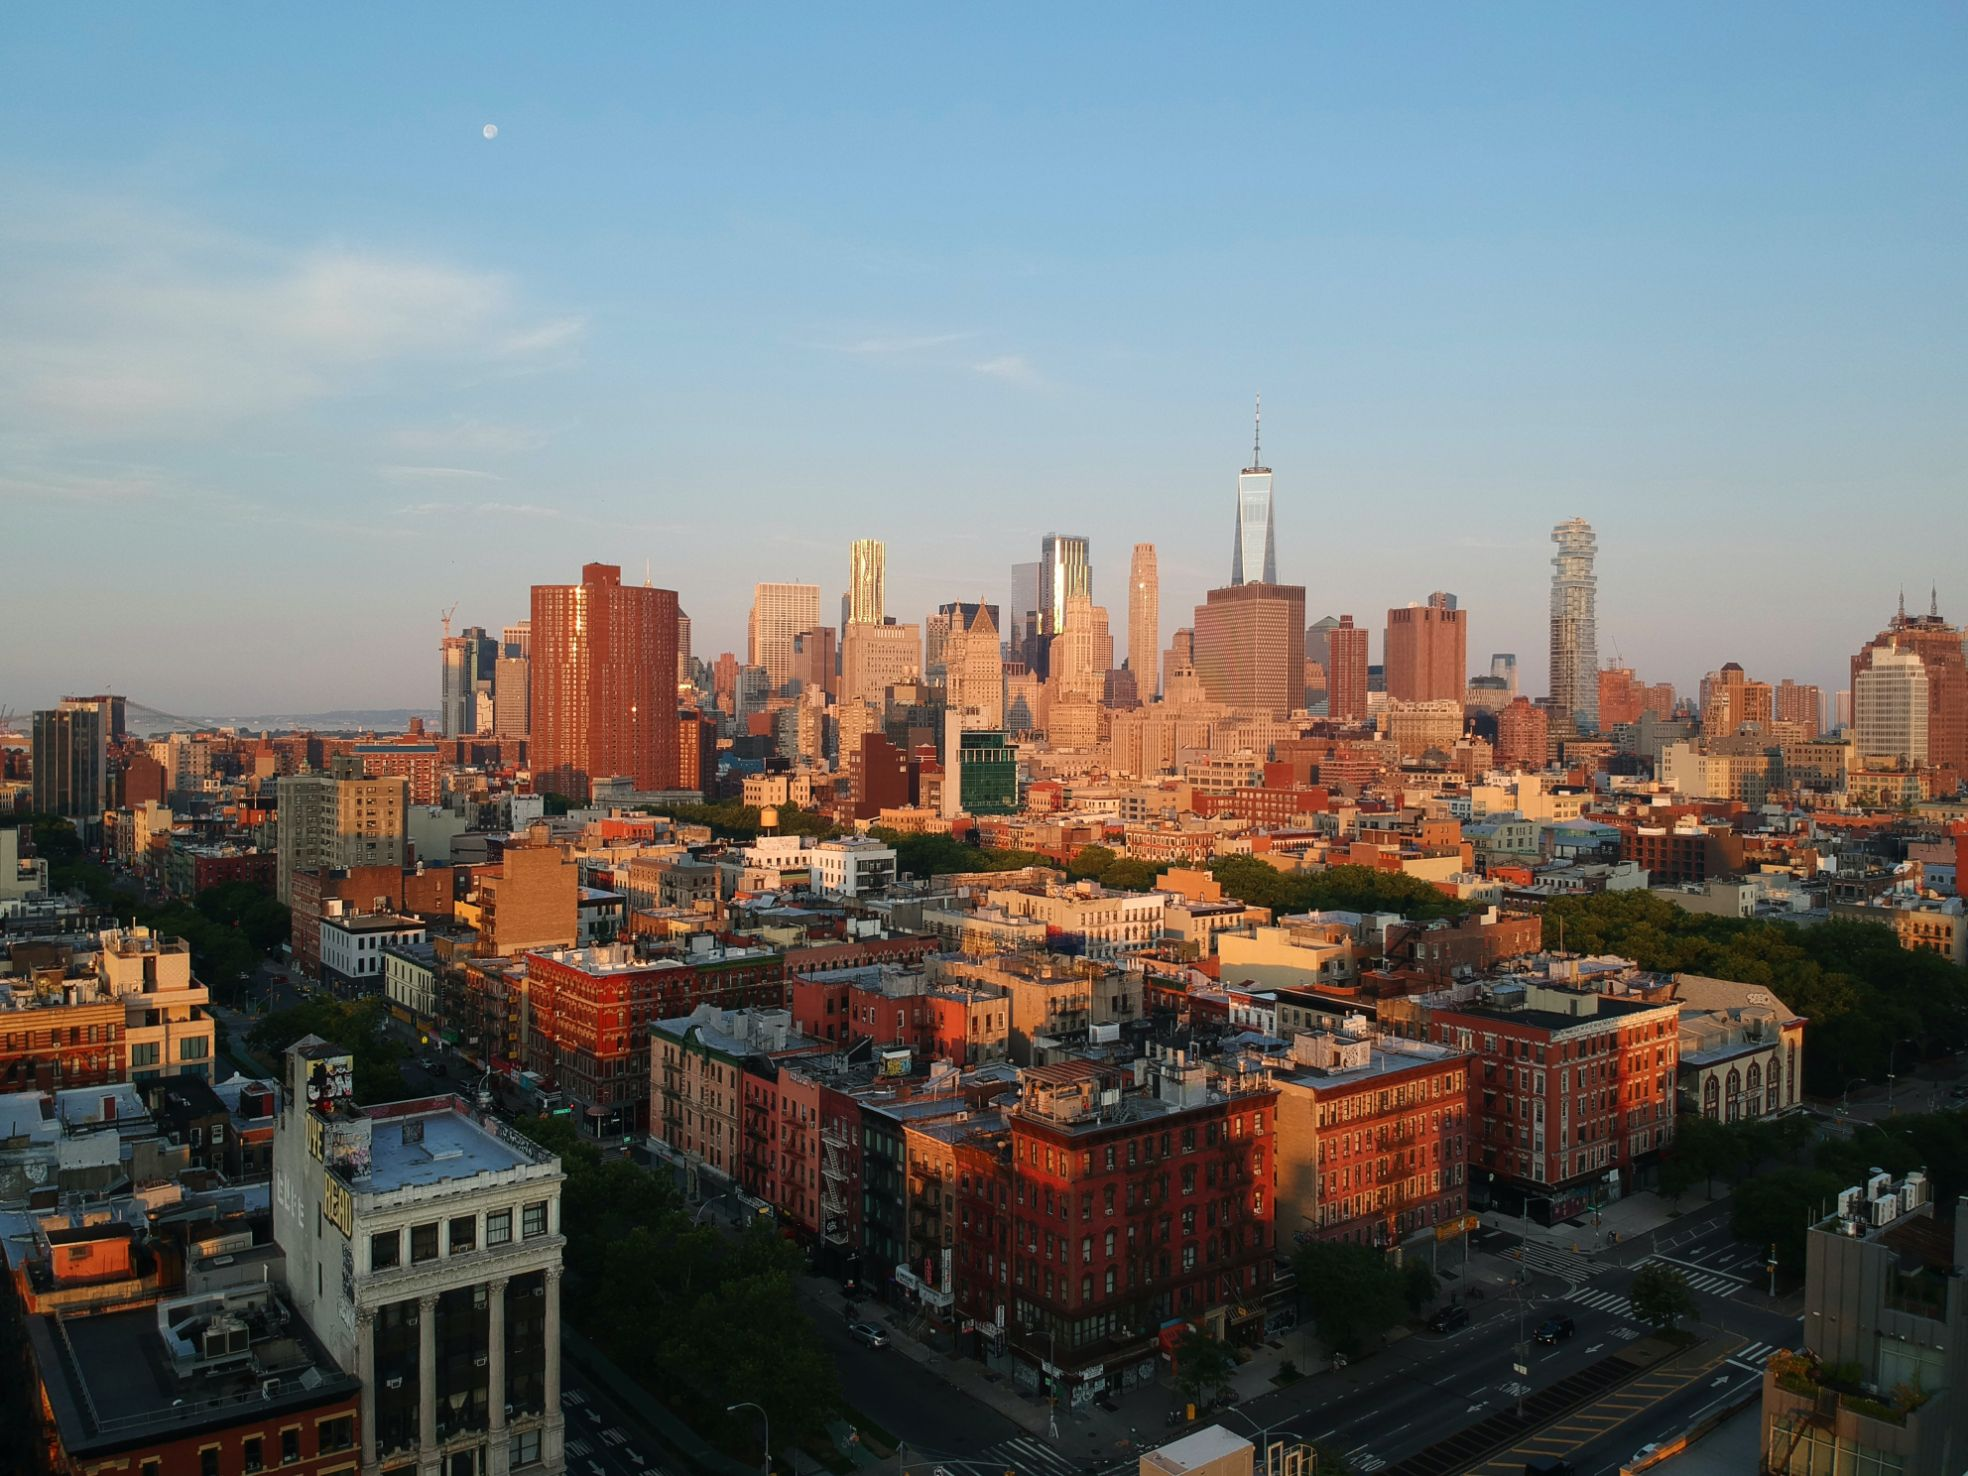 Shot of the NYC skyline in early evening light from the Lower East Side